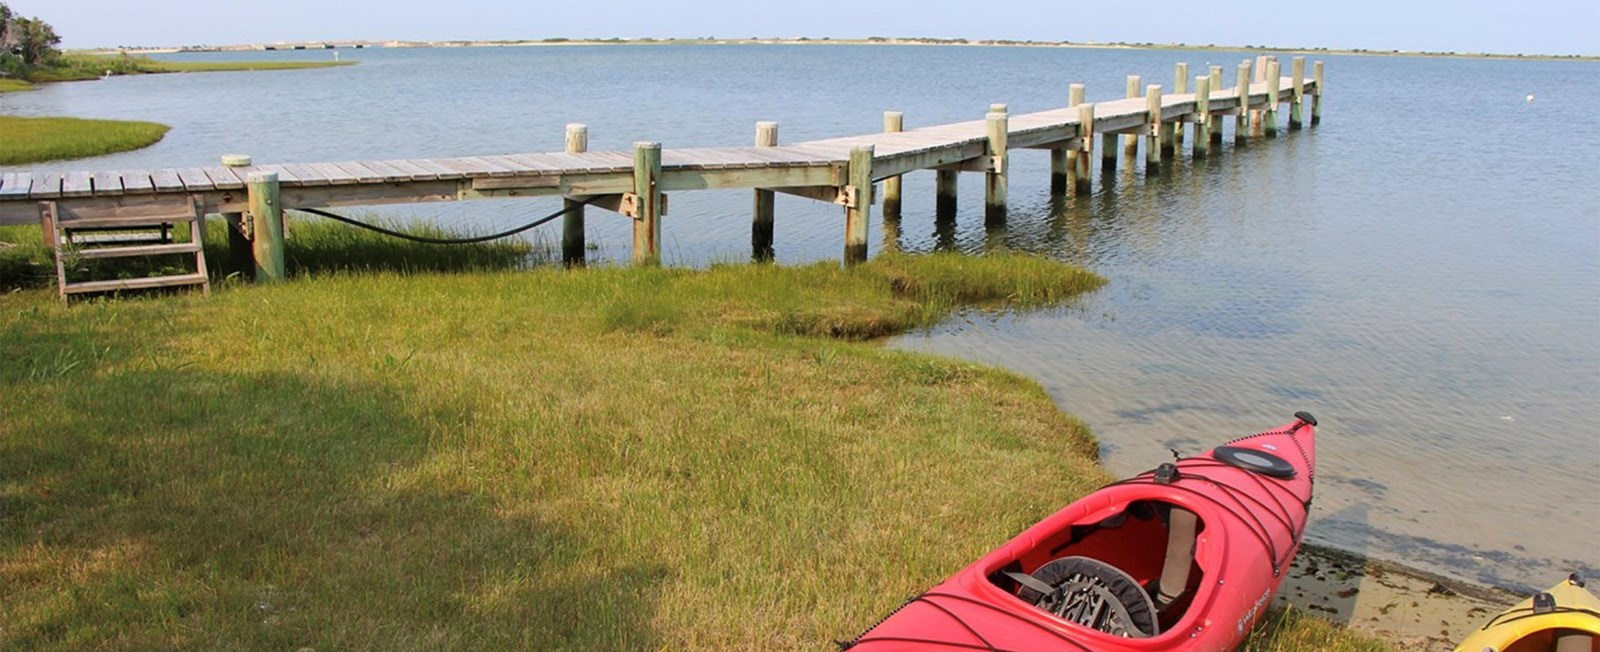 Visit the islands of Nantucket and Martha's Vineyard during the picture-perfect fall season!